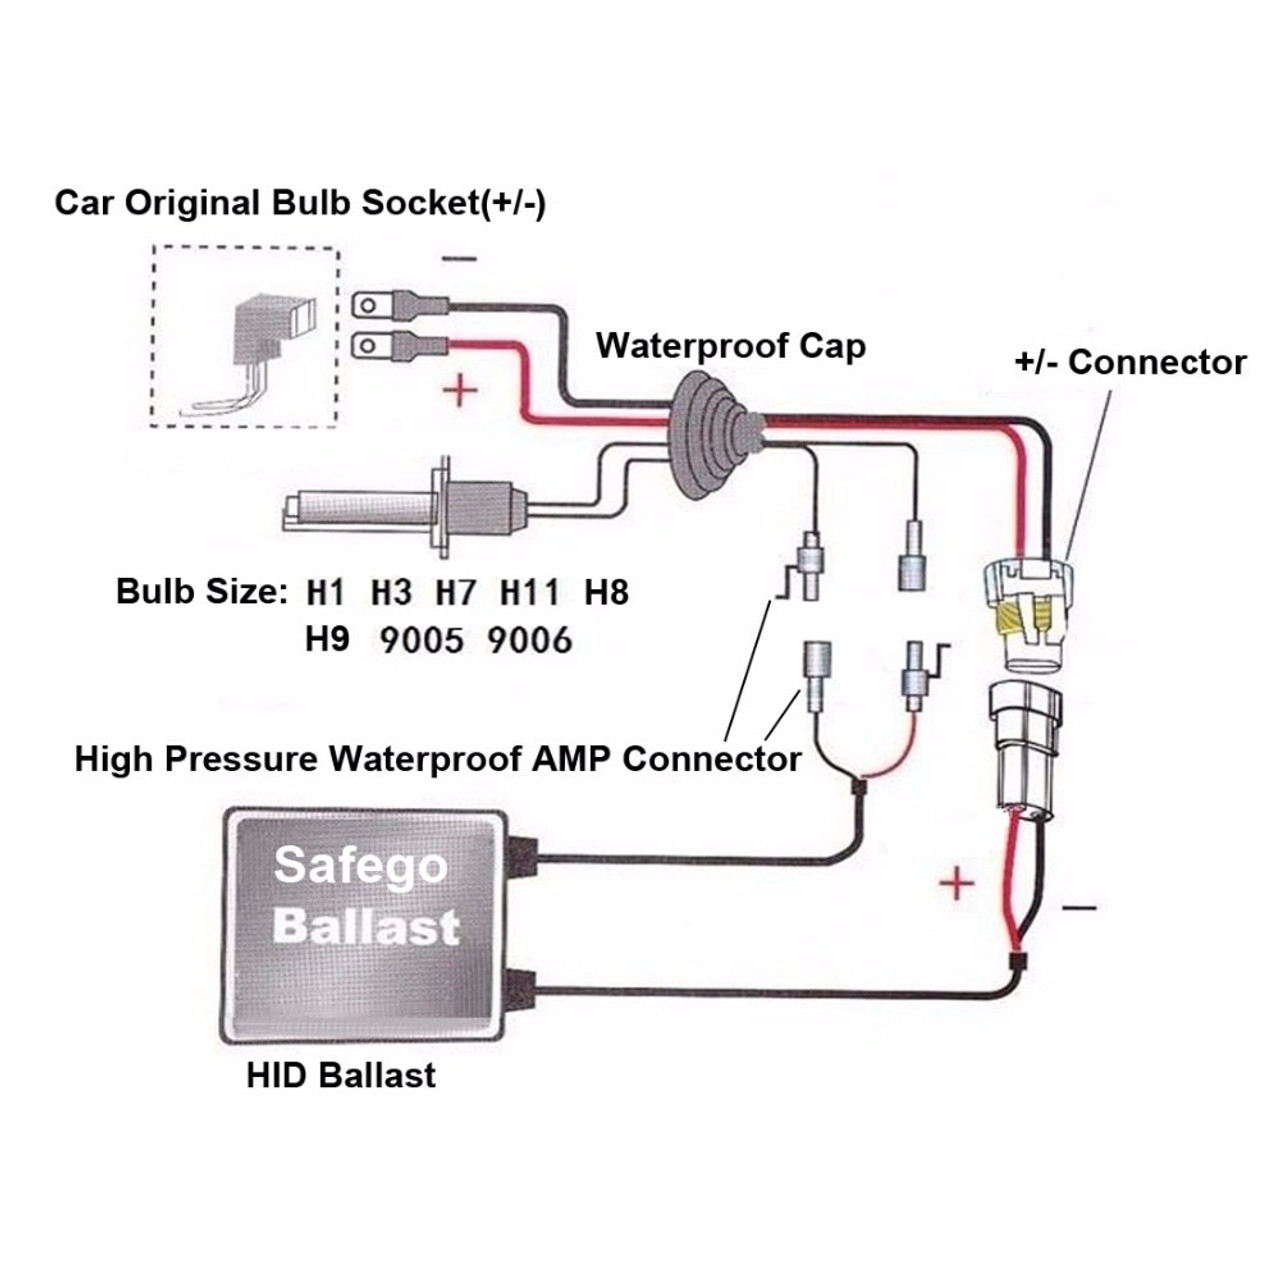 H4 Hid Wiring Diagram | Wiring Diagram H Hid Wiring Harness Diagram on